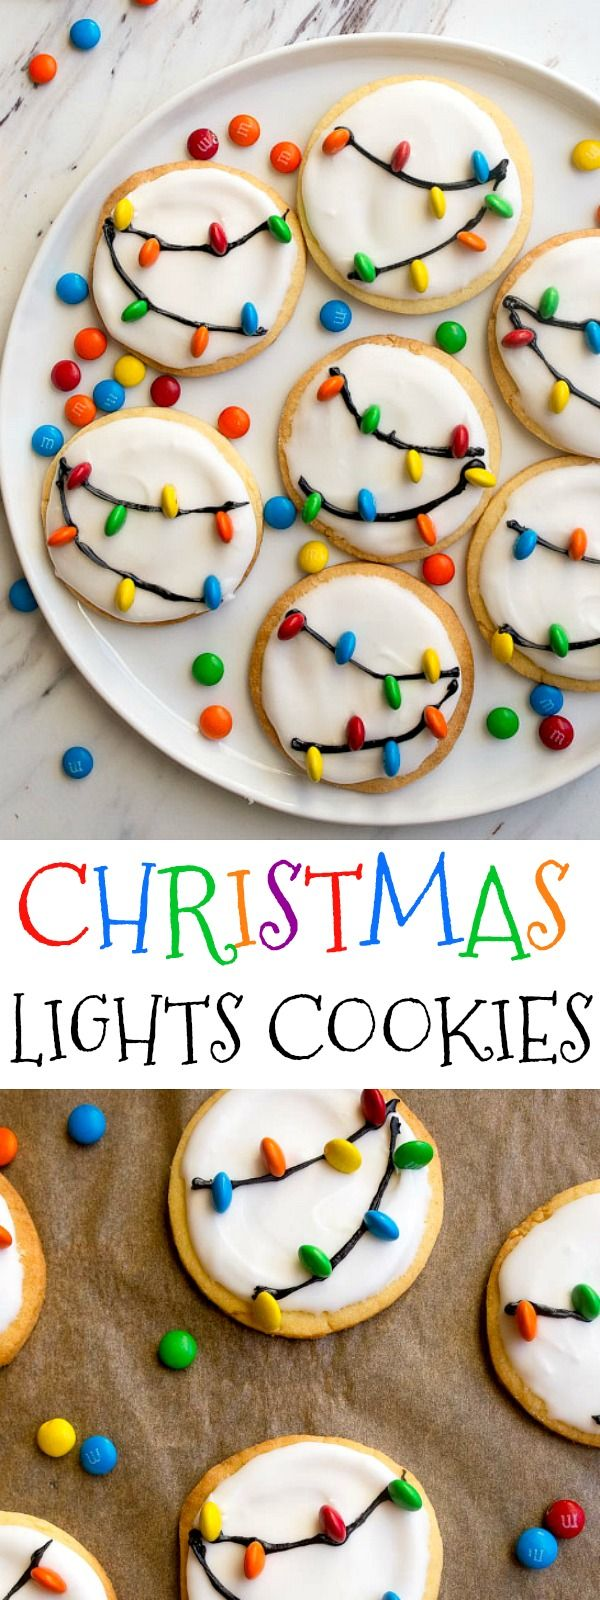 Christmas lights cookies fun and easy